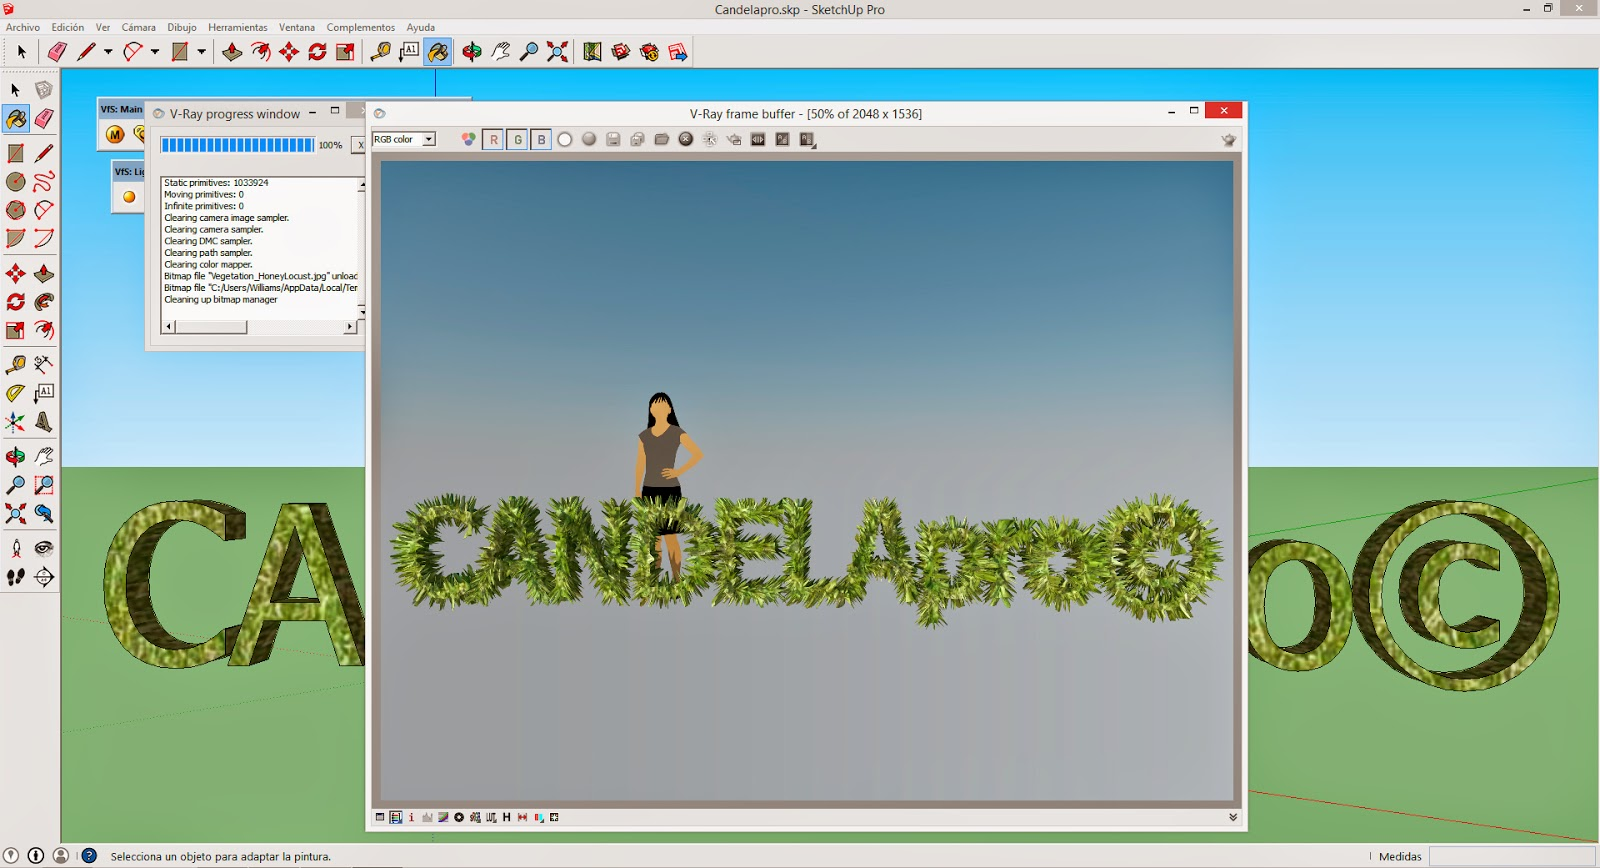 Vray for sketchup pro 2013 crack download apifile for Sketchup 2013